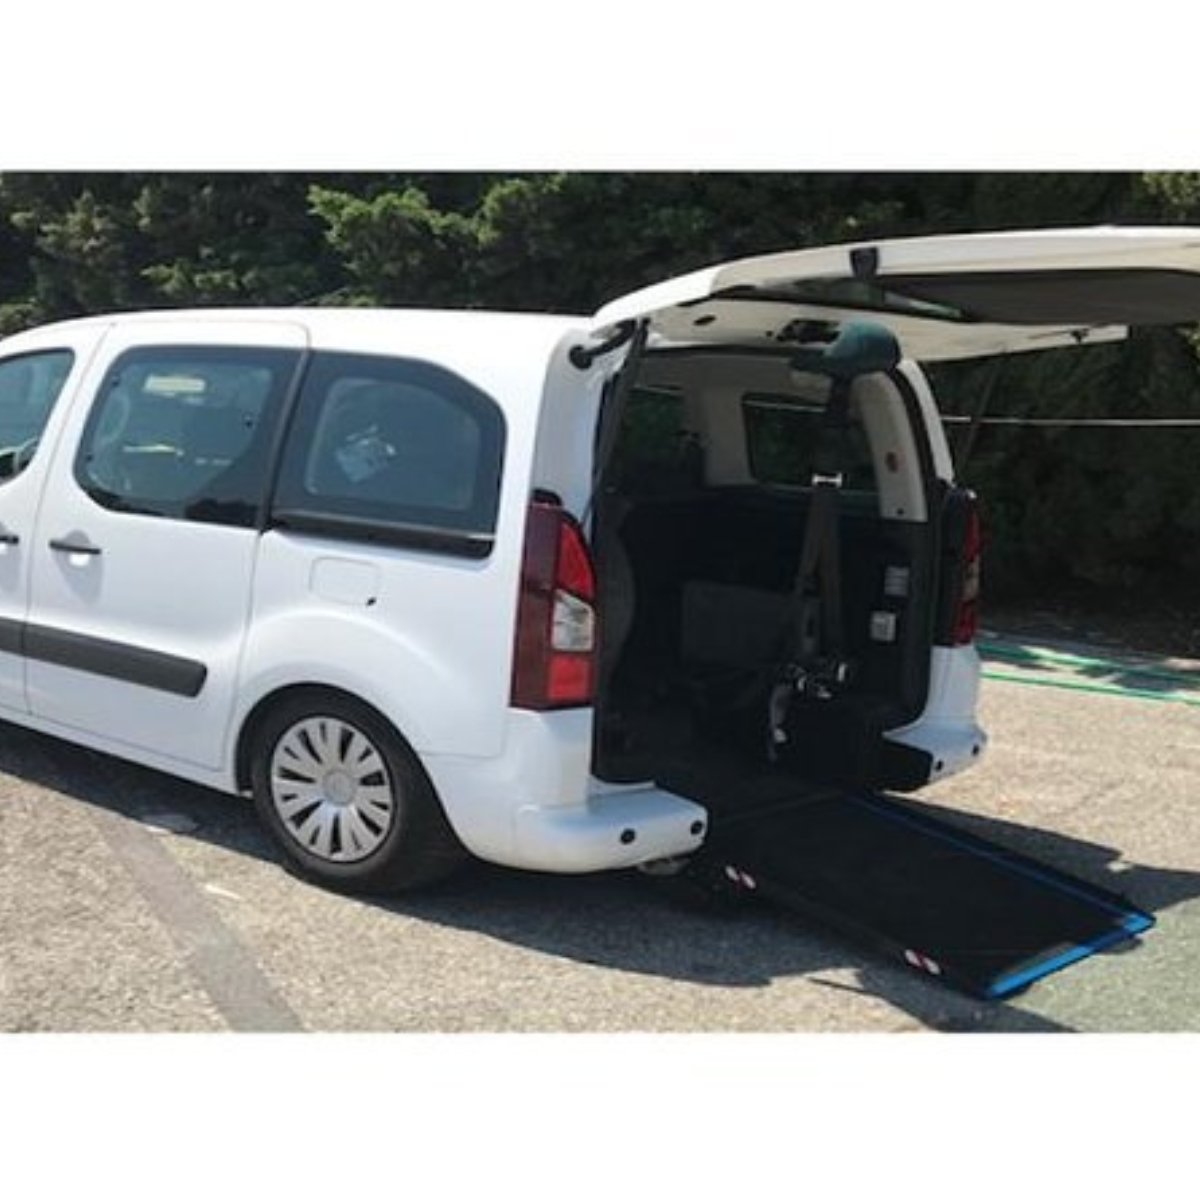 Disability & Mobility Private Transfer Monaco to Nice airport Images